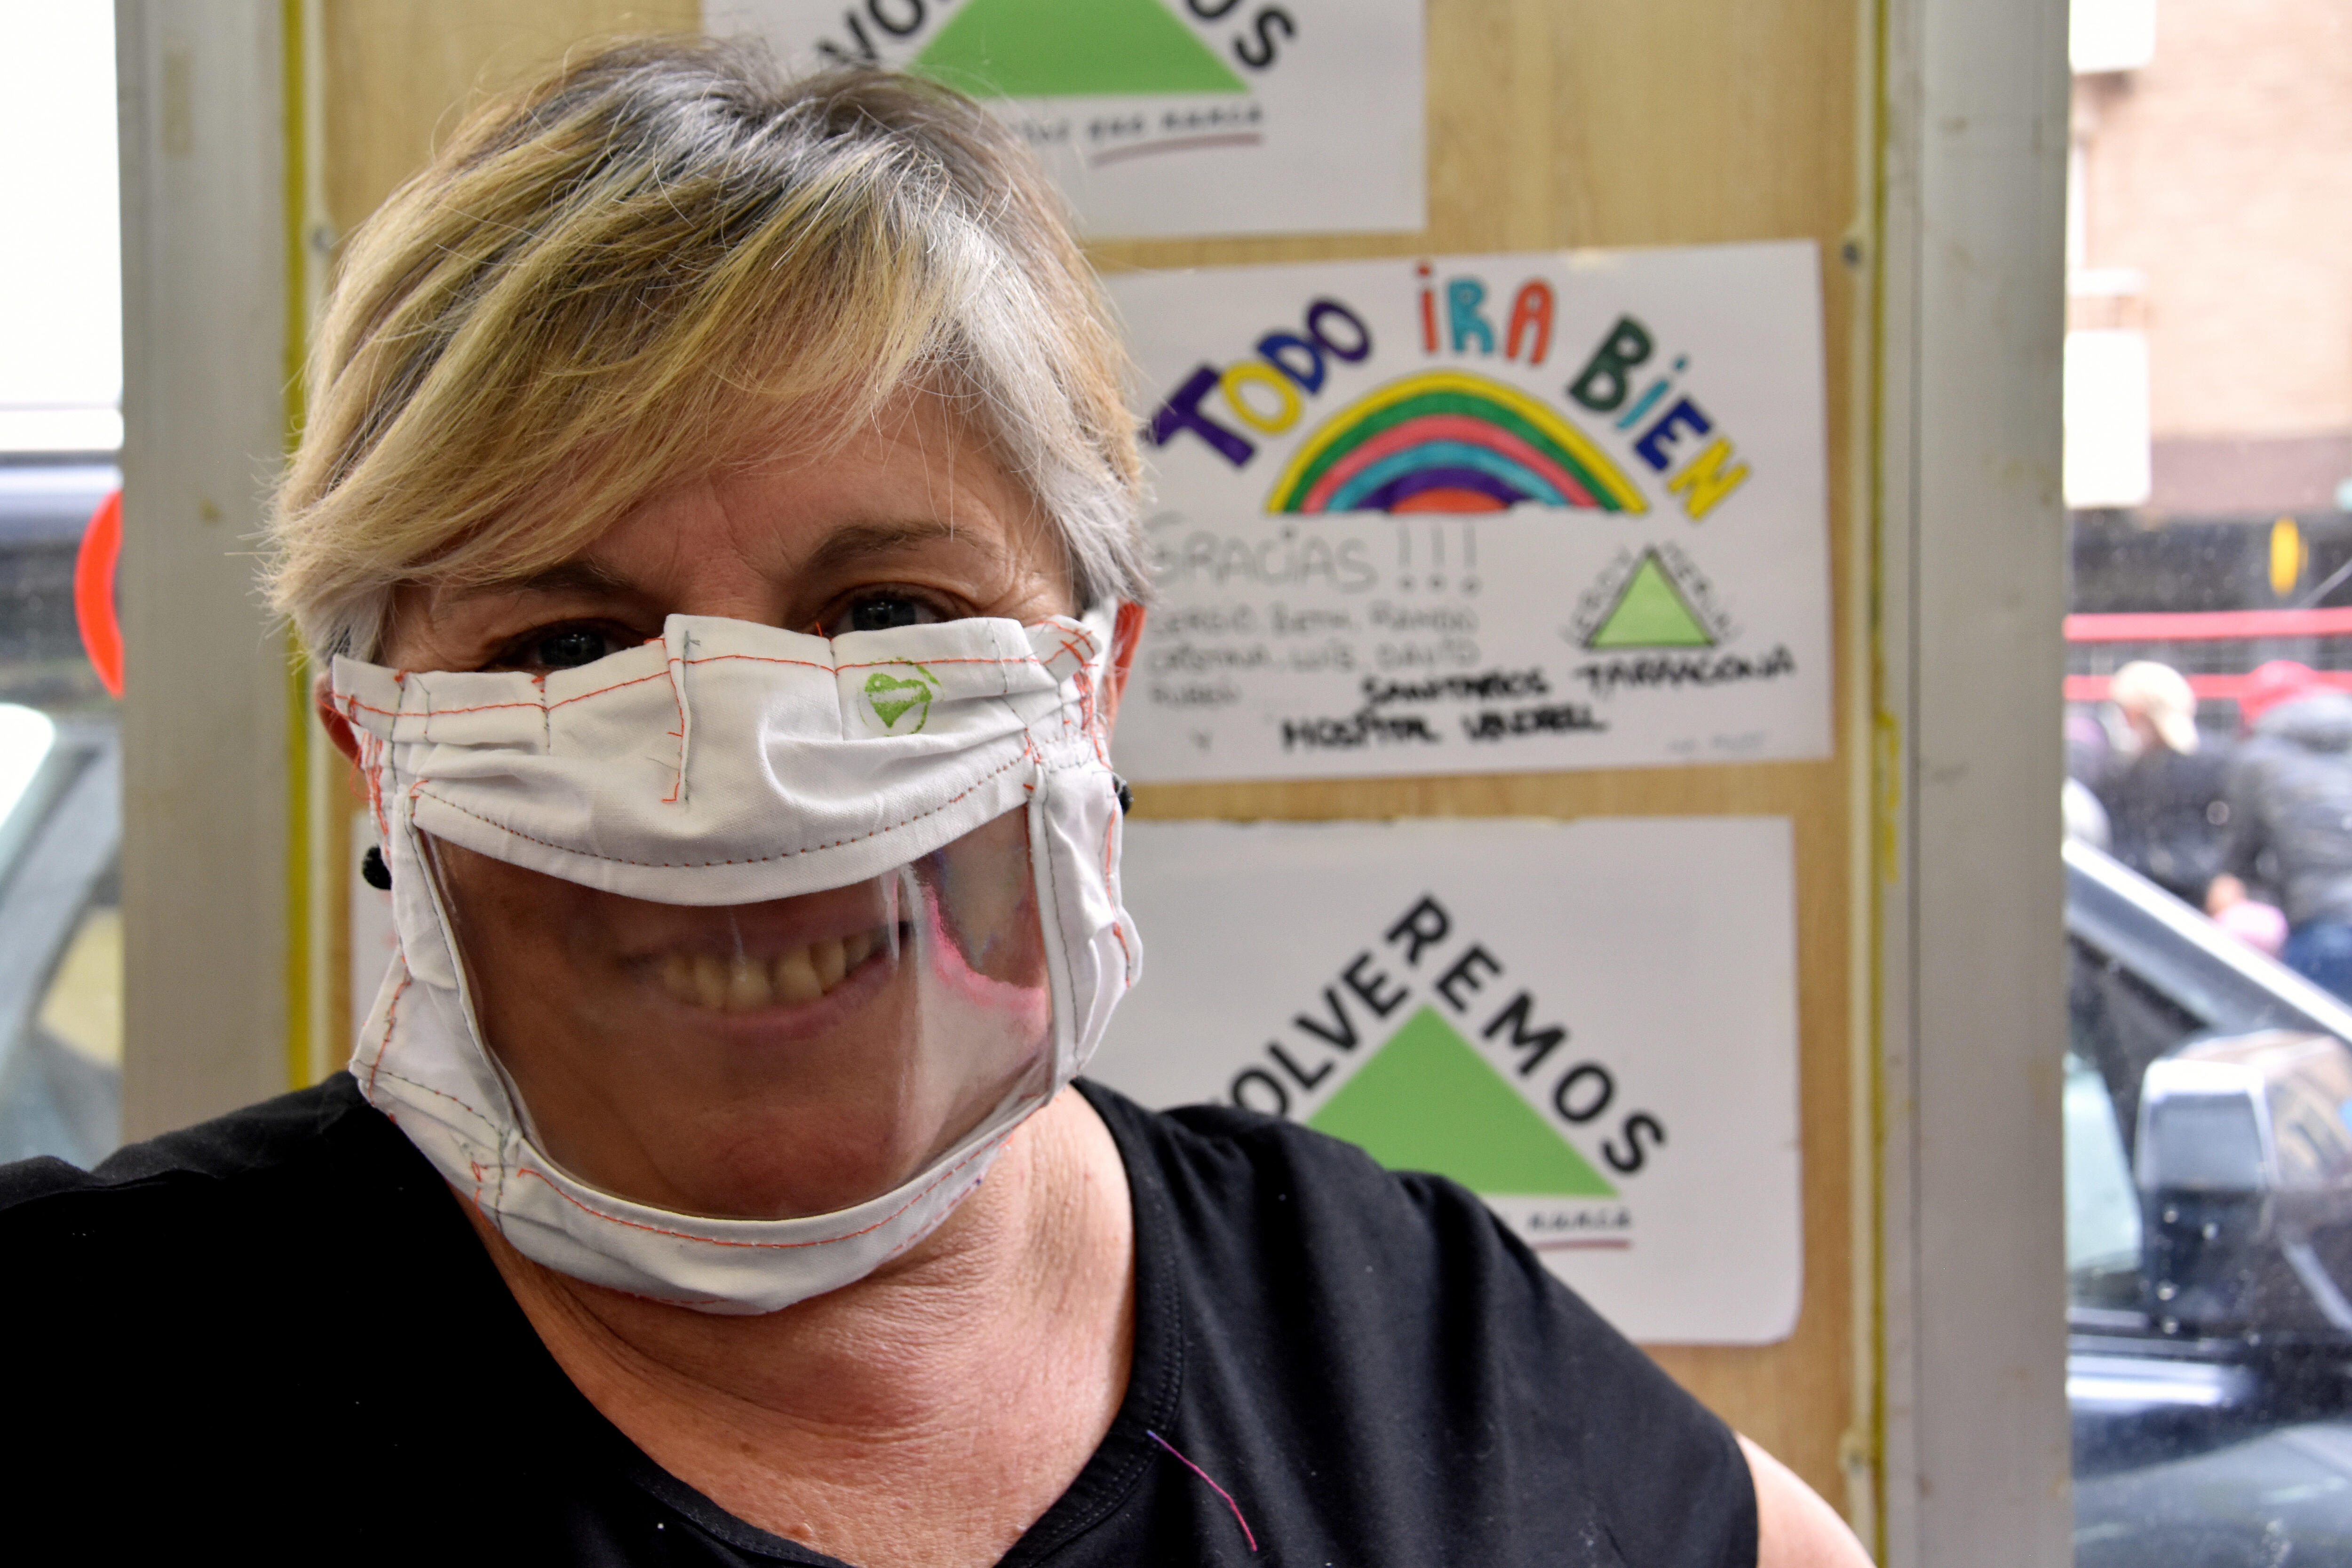 Special masks for the hearing-impaired